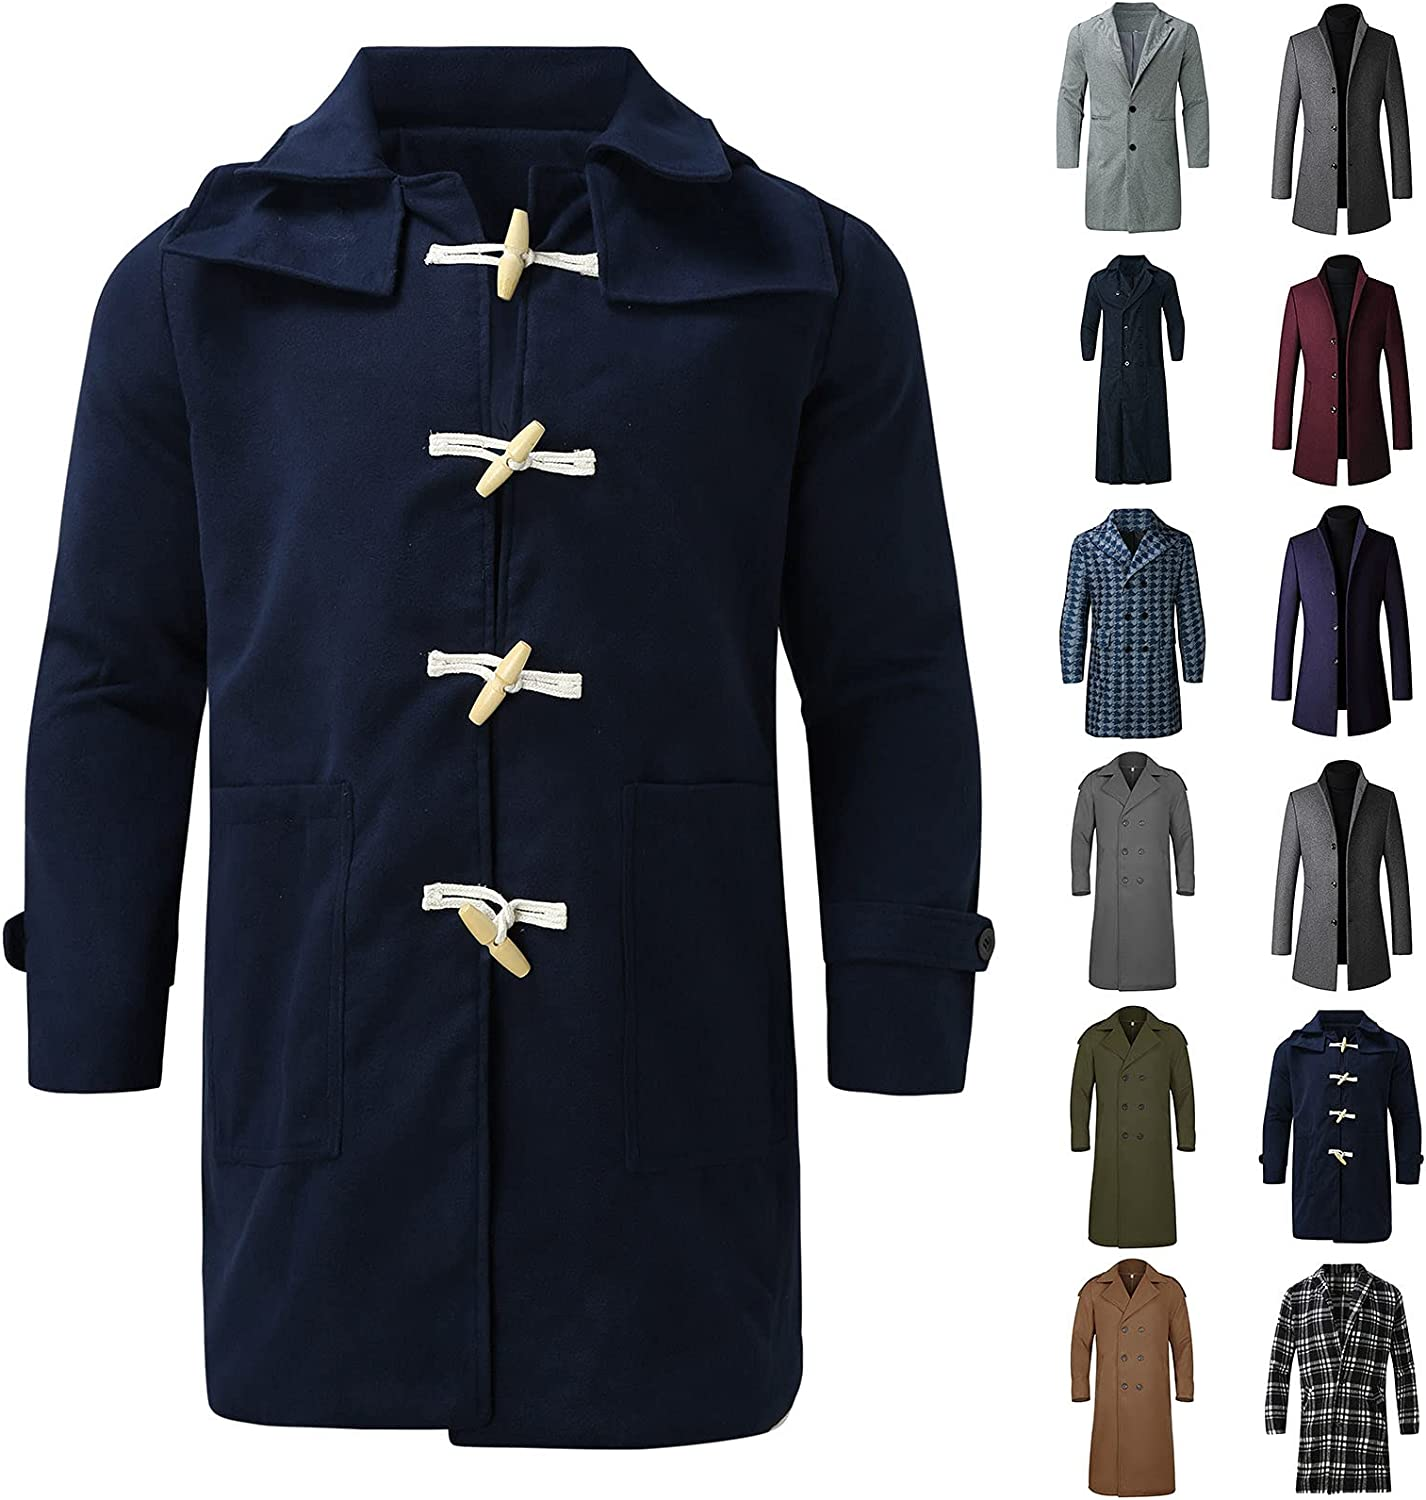 PAOGE Men's Overcoats Winter Solid Color Long Sleeved Turn-Down Collar Trench Coats Plus Size